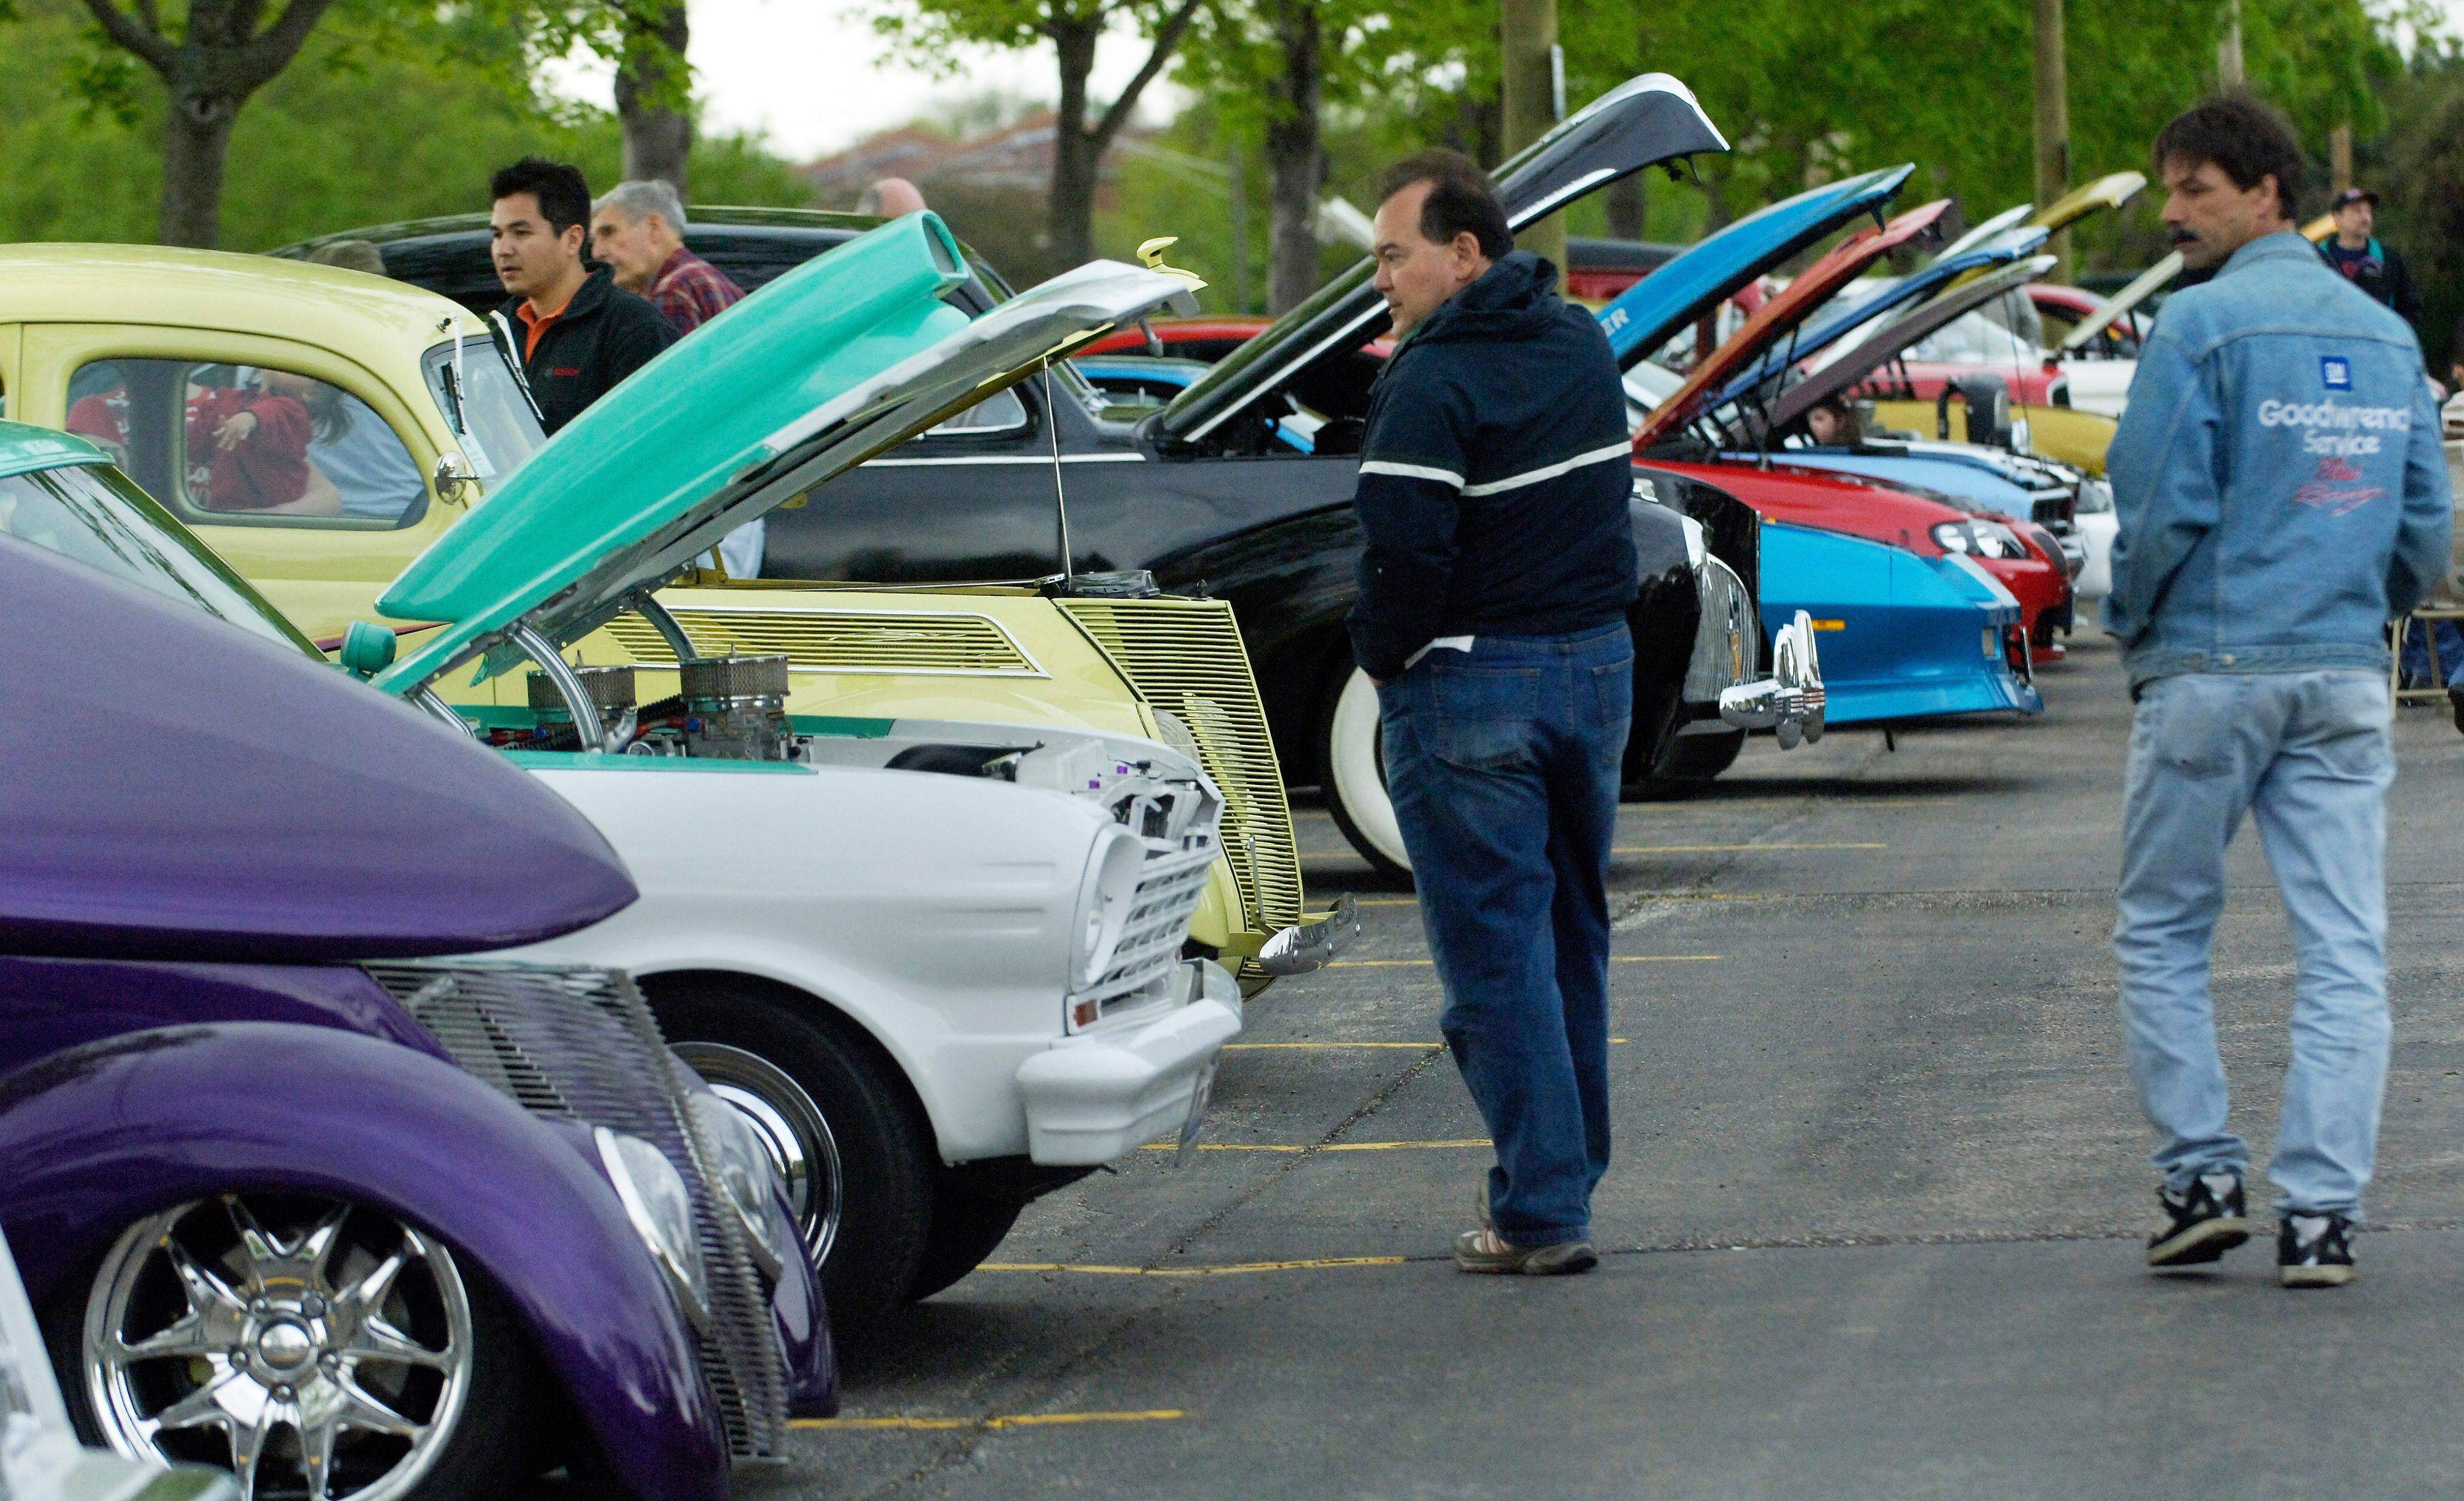 Mt. Prospect brings back Cruise Nights